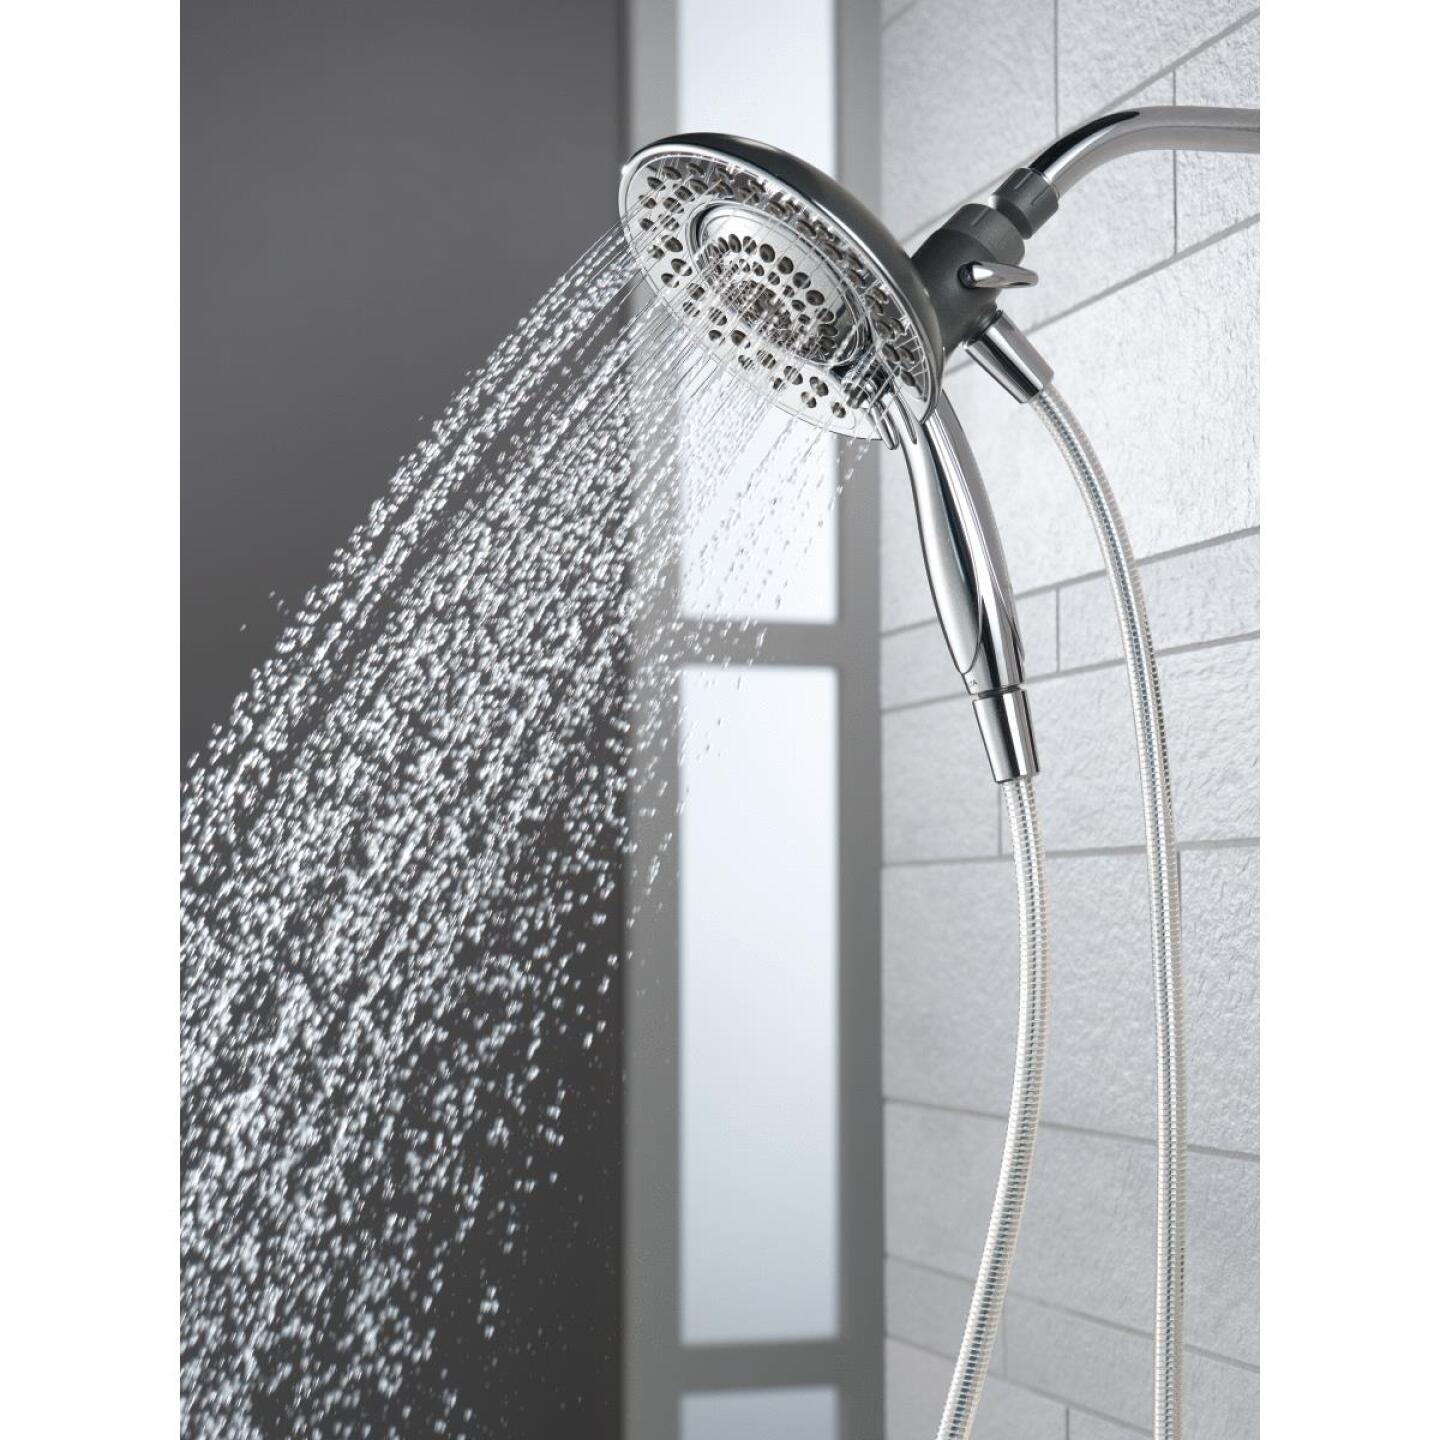 Delta In2ition 5-Spray 1.8 GPM Combo Handheld Shower & Showerhead, Chrome Image 3